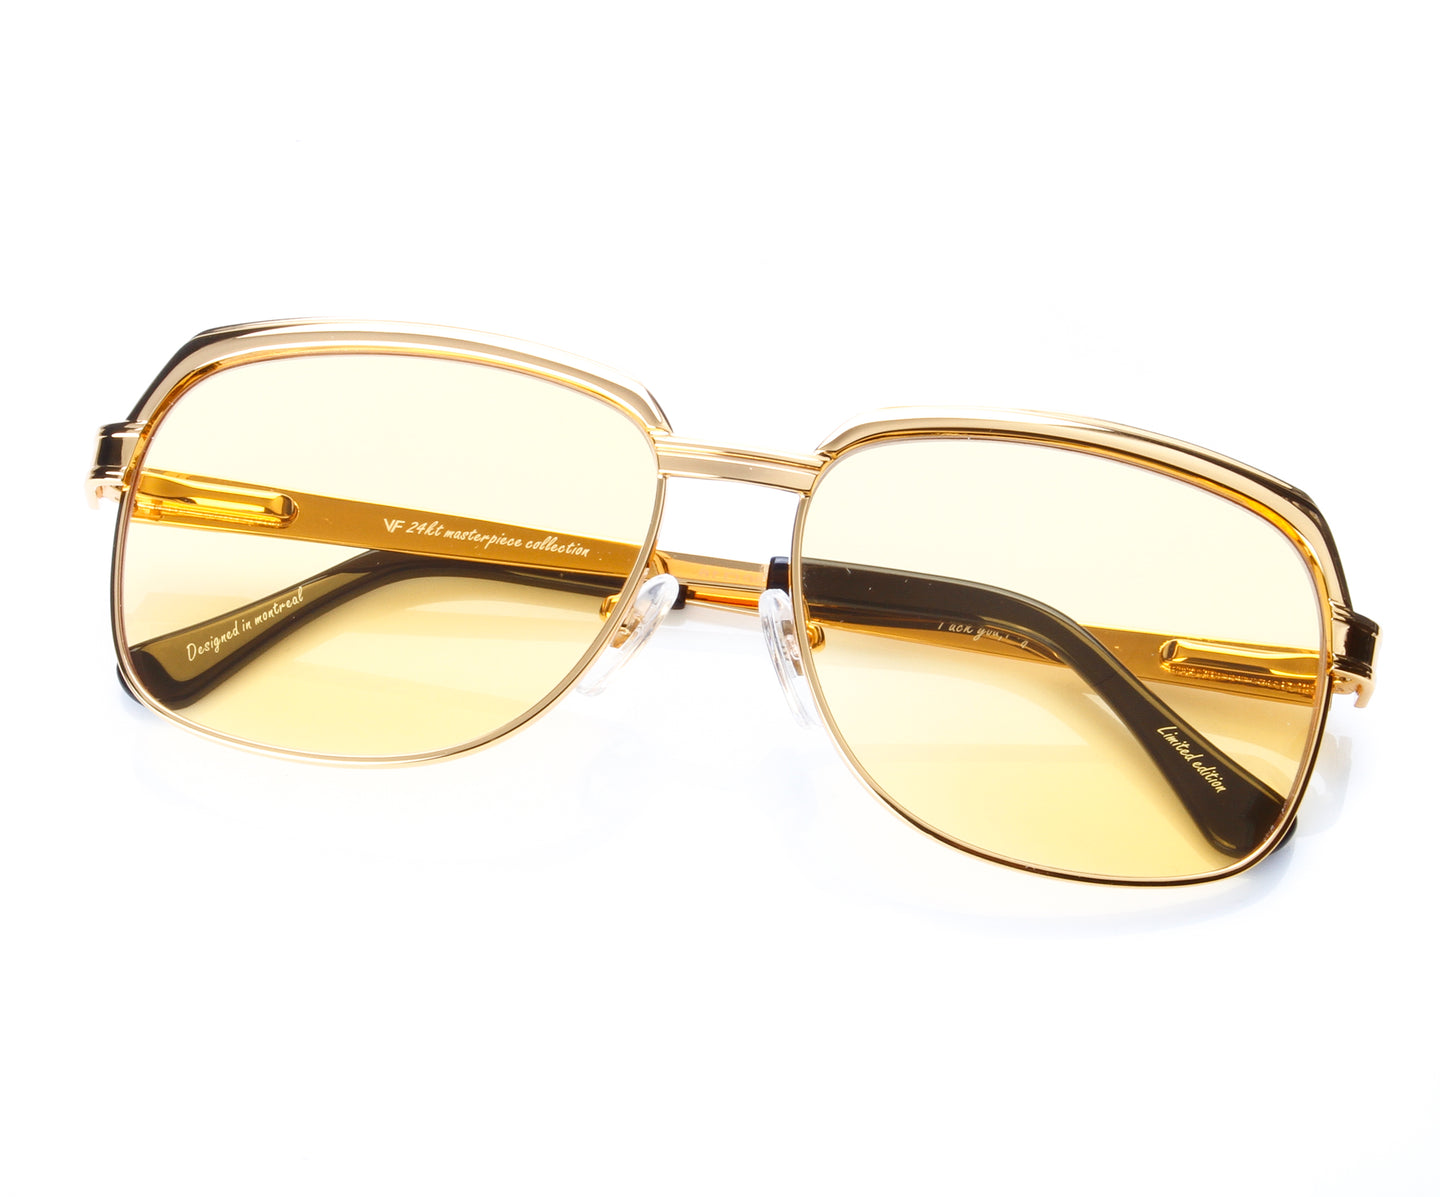 VF The Collector Masterpiece 24KT Gold Signature Edition (Honey Yellow), VF Masterpiece , glasses frames, eyeglasses online, eyeglass frames, mens glasses, womens glasses, buy glasses online, designer eyeglasses, vintage sunglasses, retro sunglasses, vintage glasses, sunglass, eyeglass, glasses, lens, vintage frames company, vf